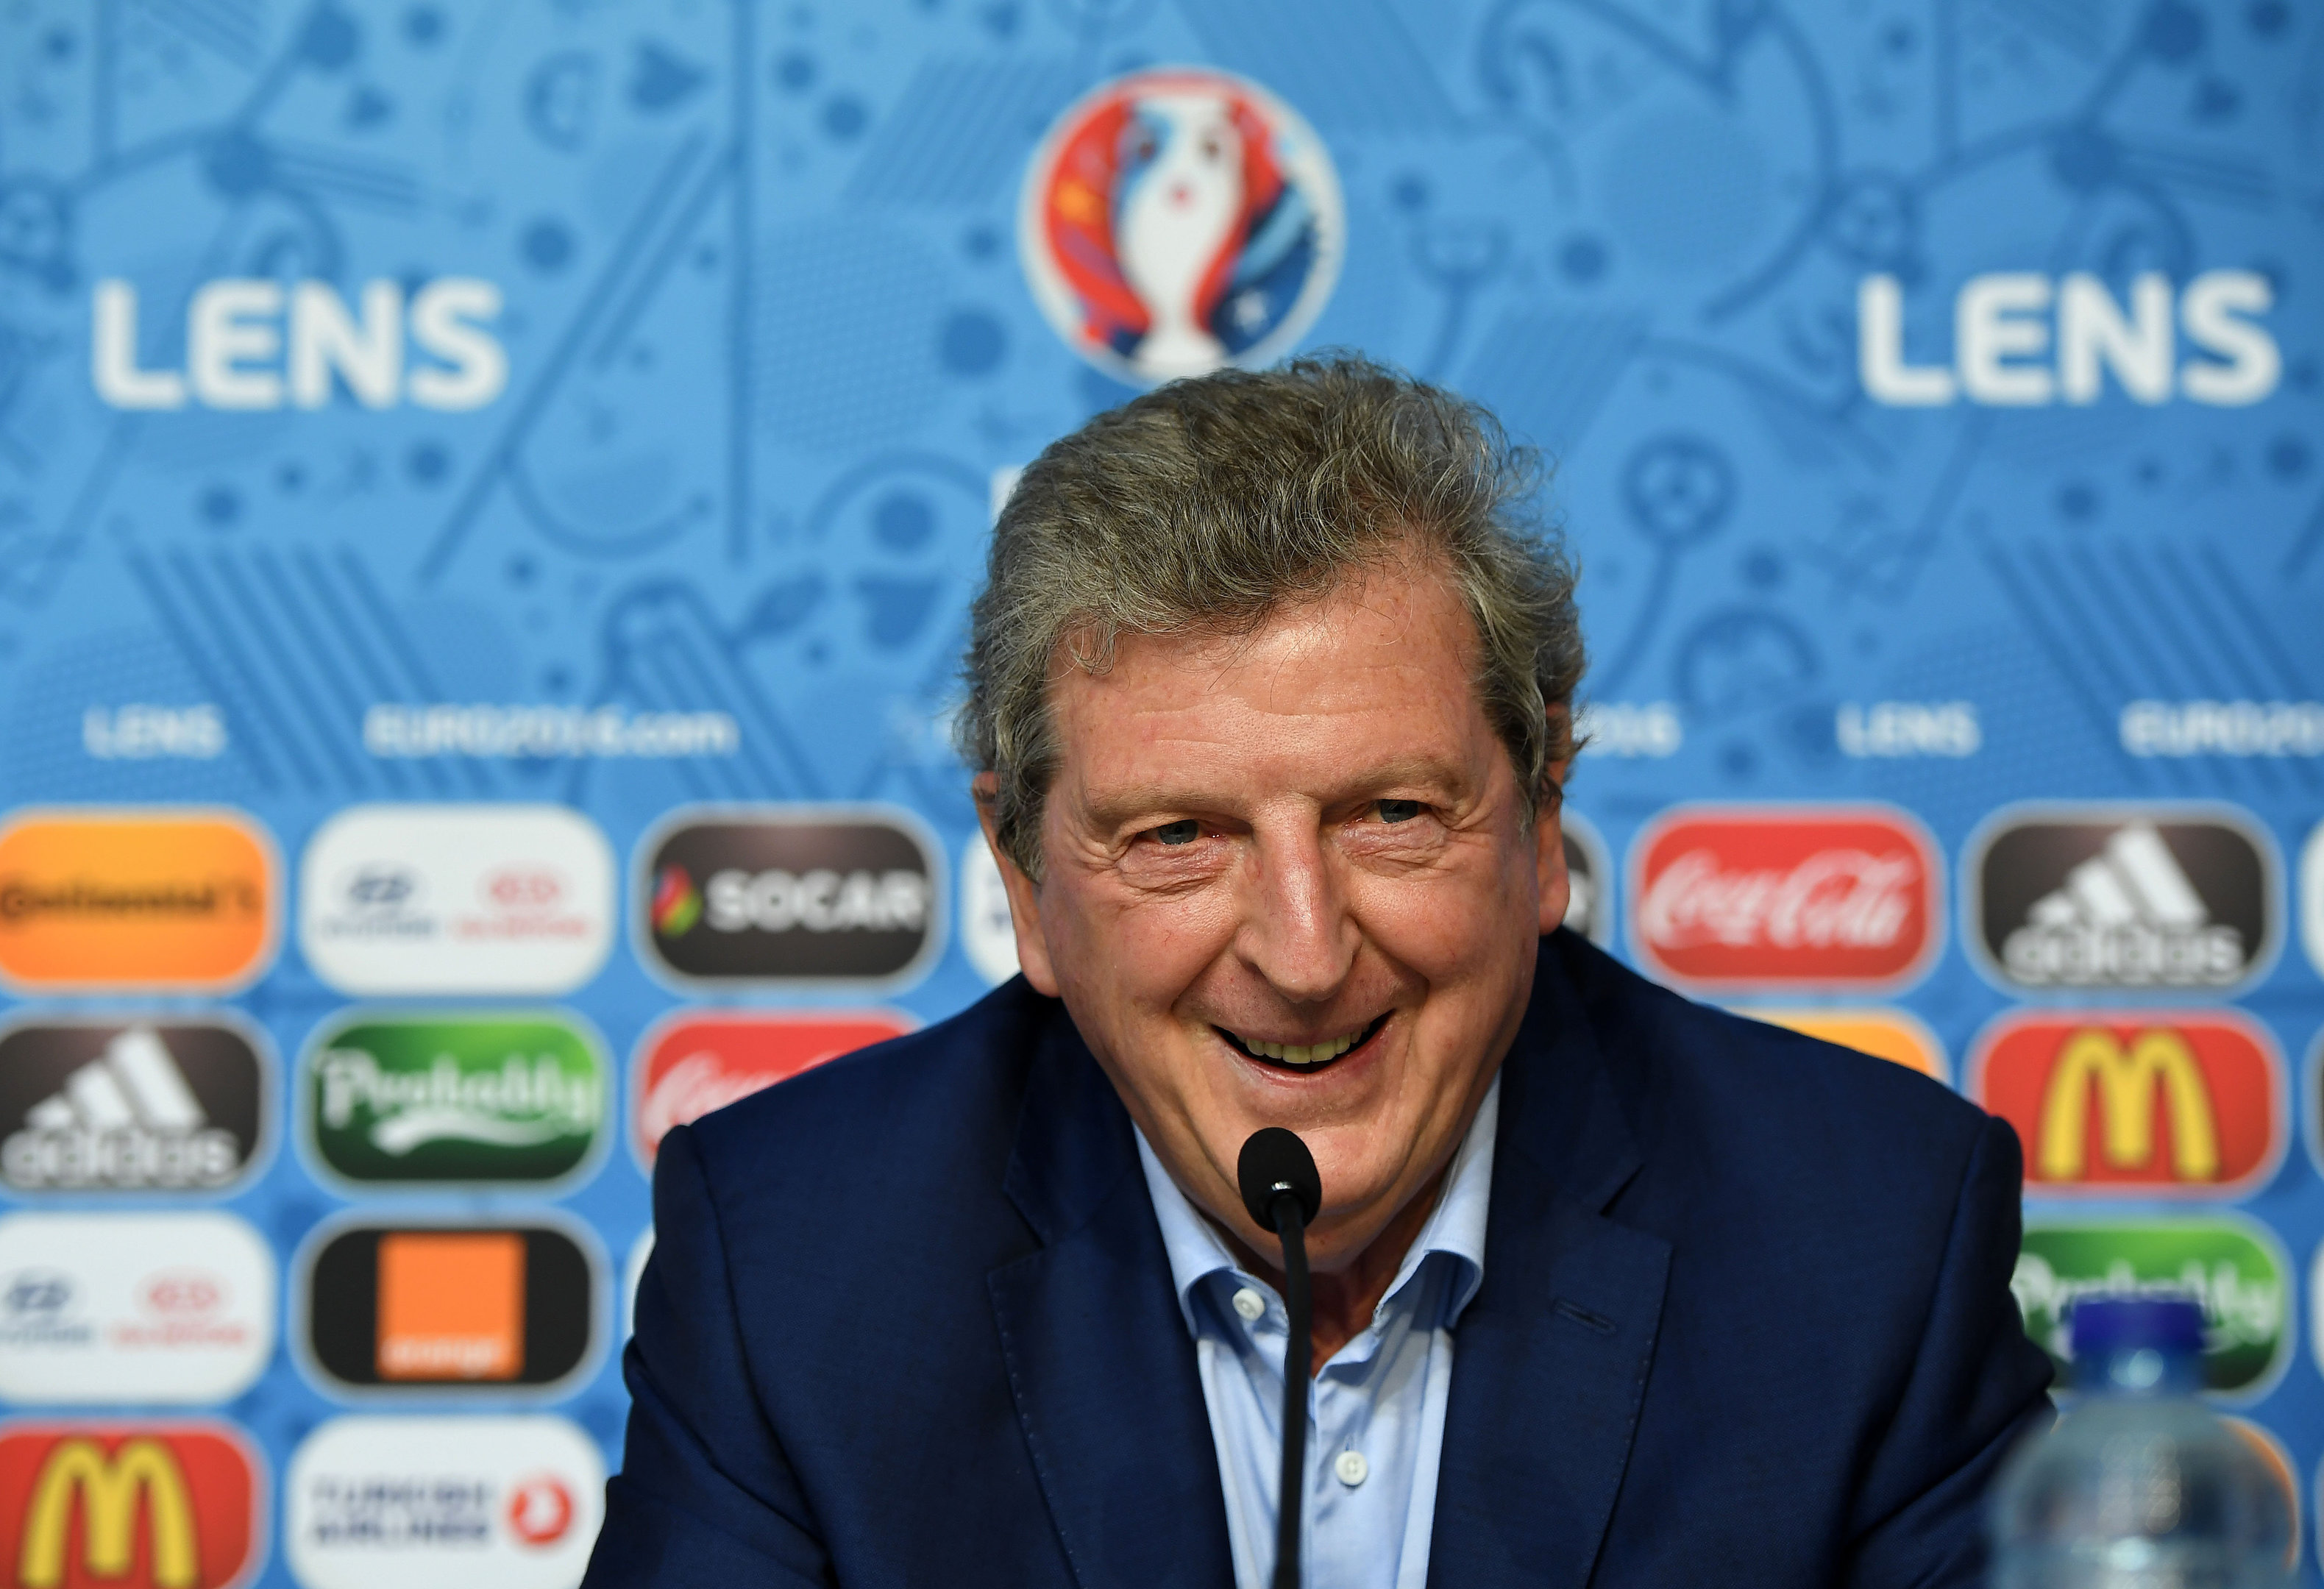 England manager Roy Hodgson (UEFA via Getty Images)